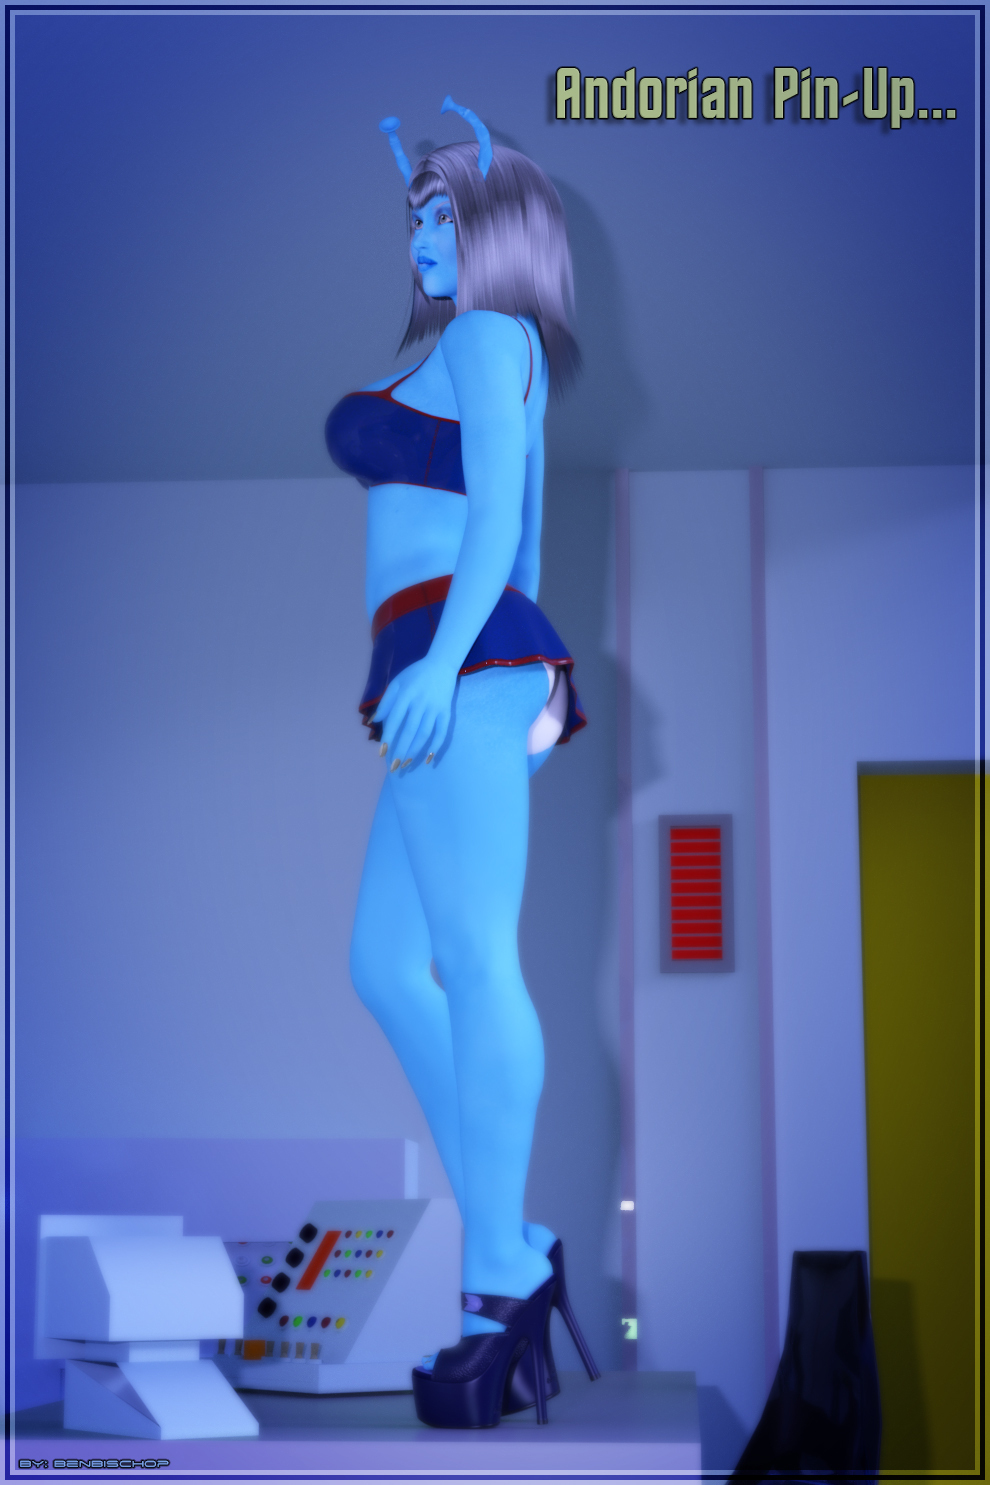 Andorian Pin-Up Prt 2.0... by BenBischop